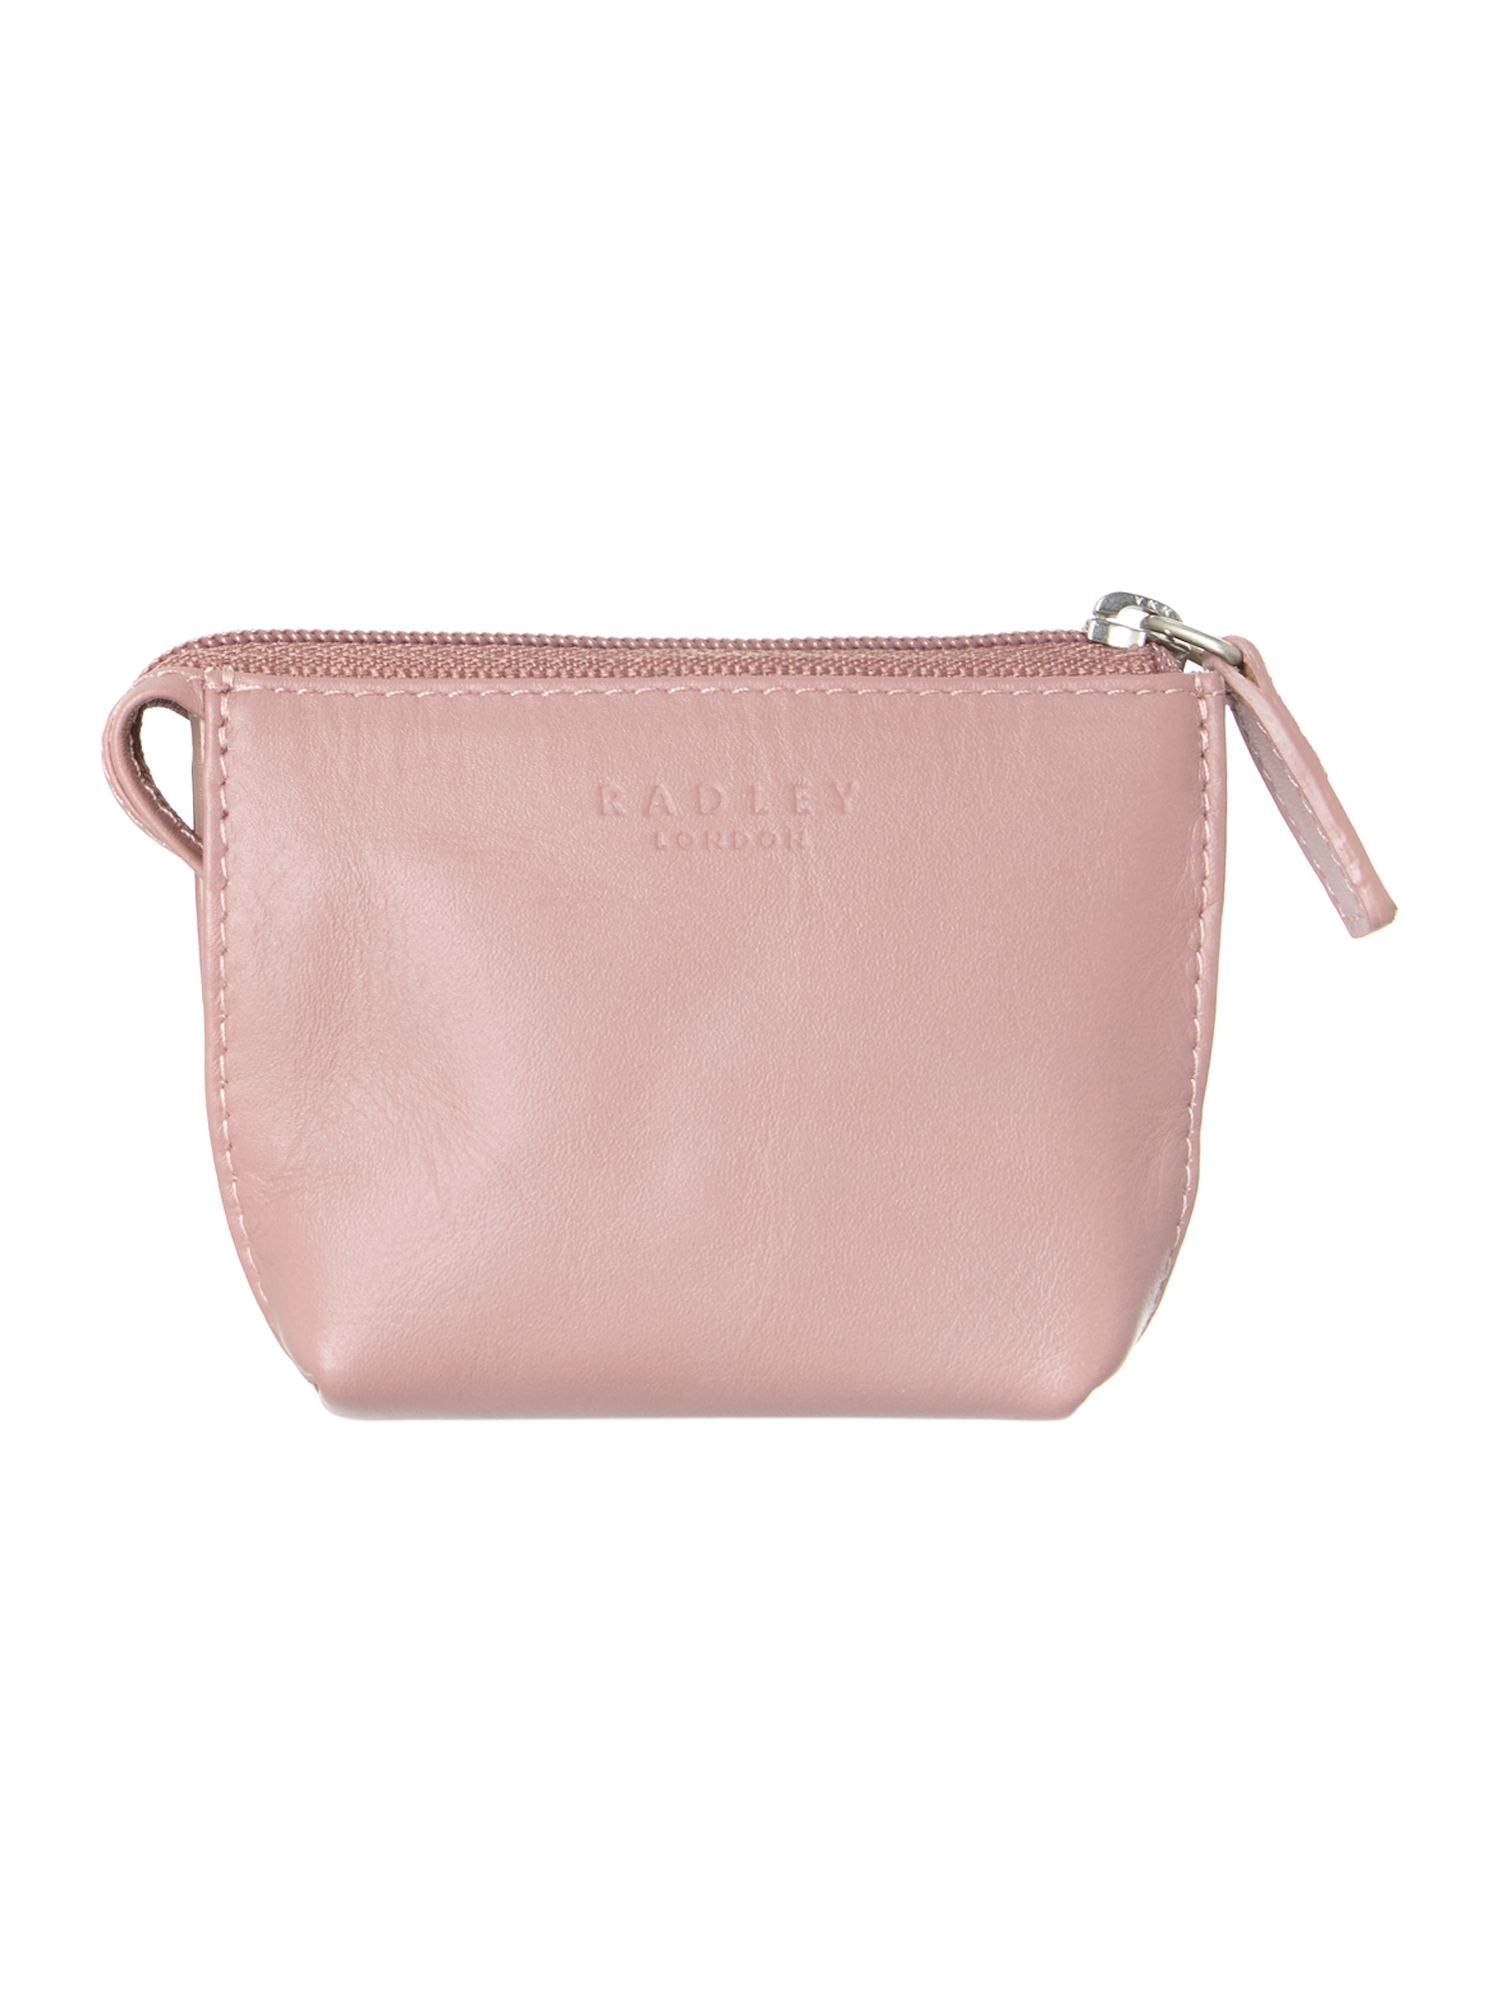 Heritage dog pink small zip coin purse